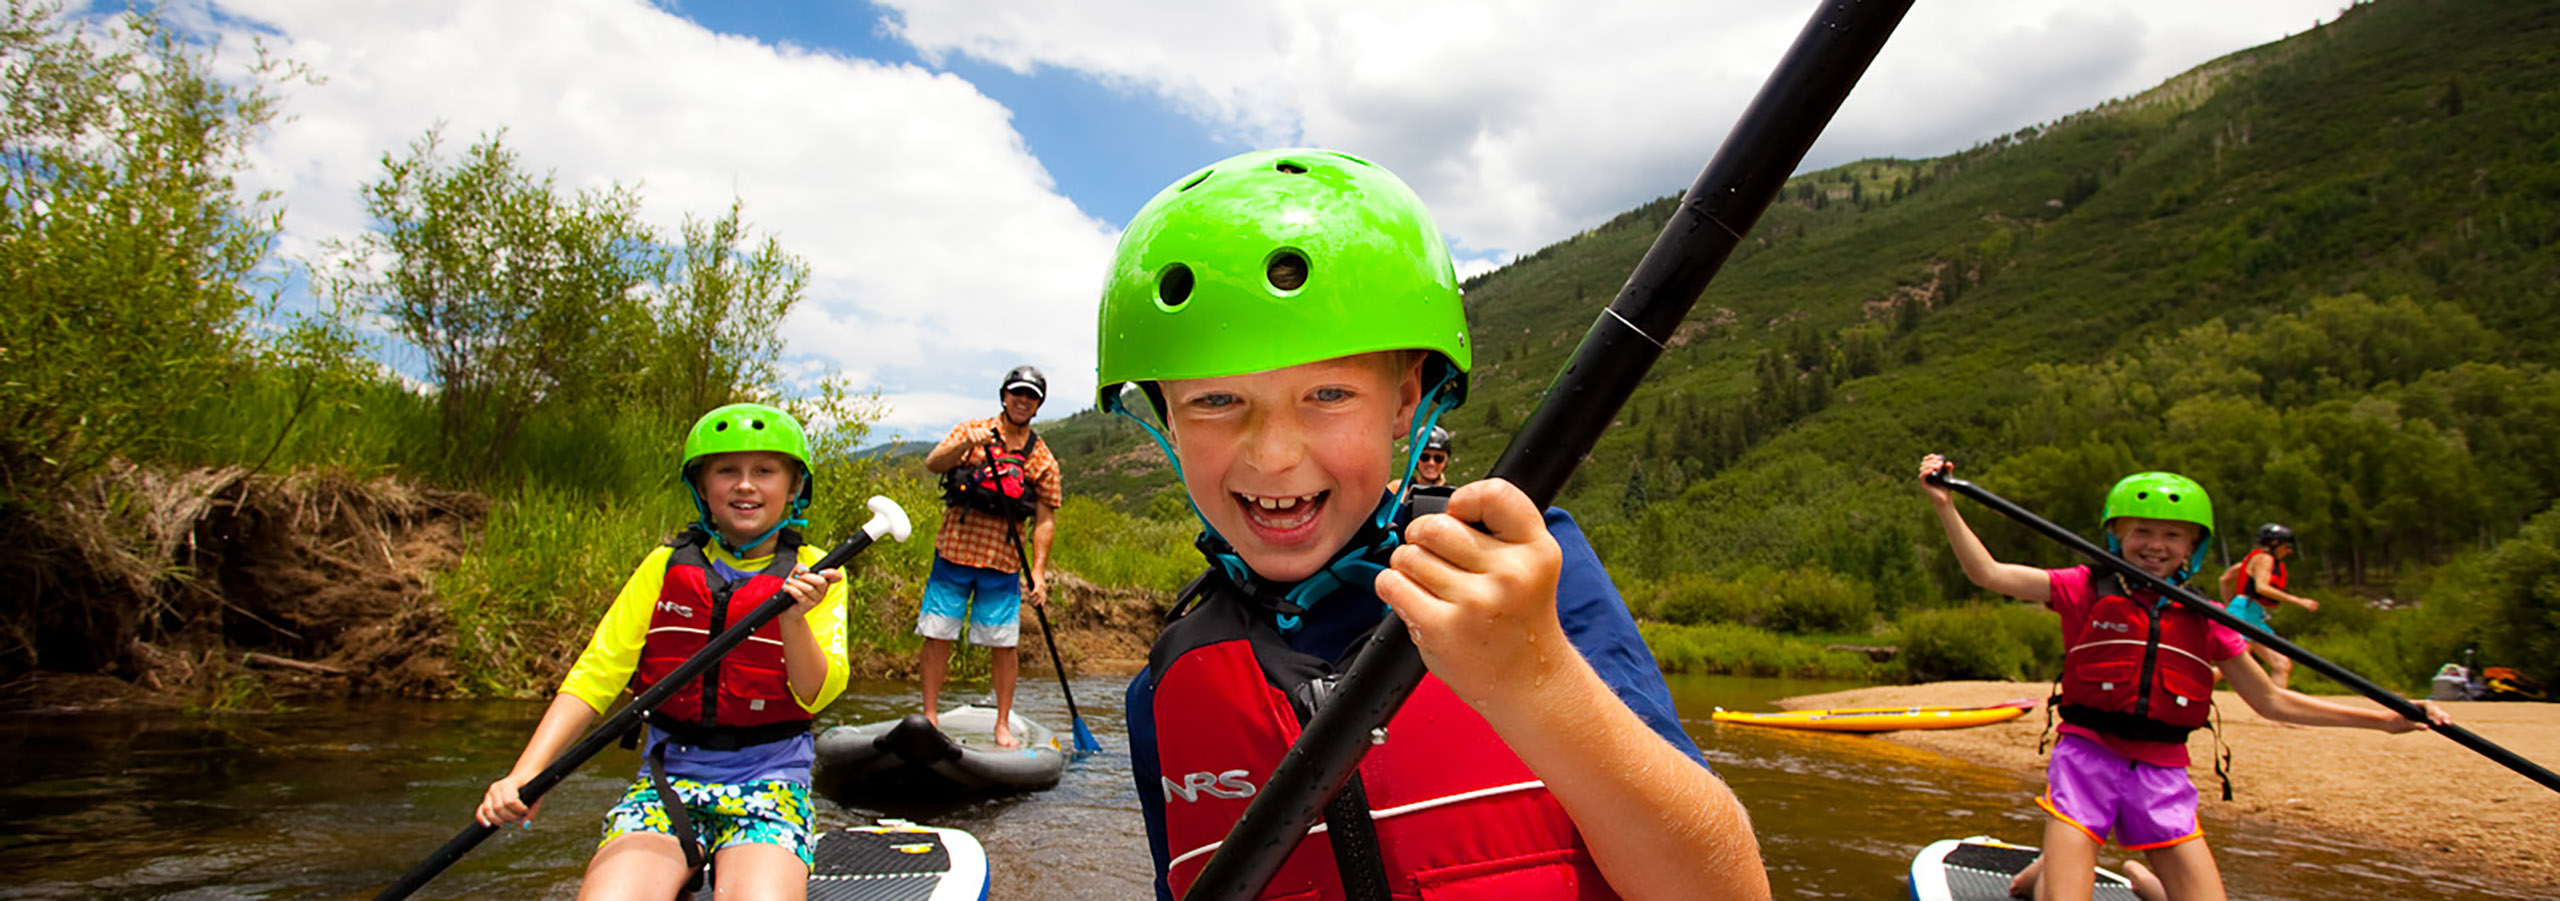 Stand Up Paddleboarding in Aspen